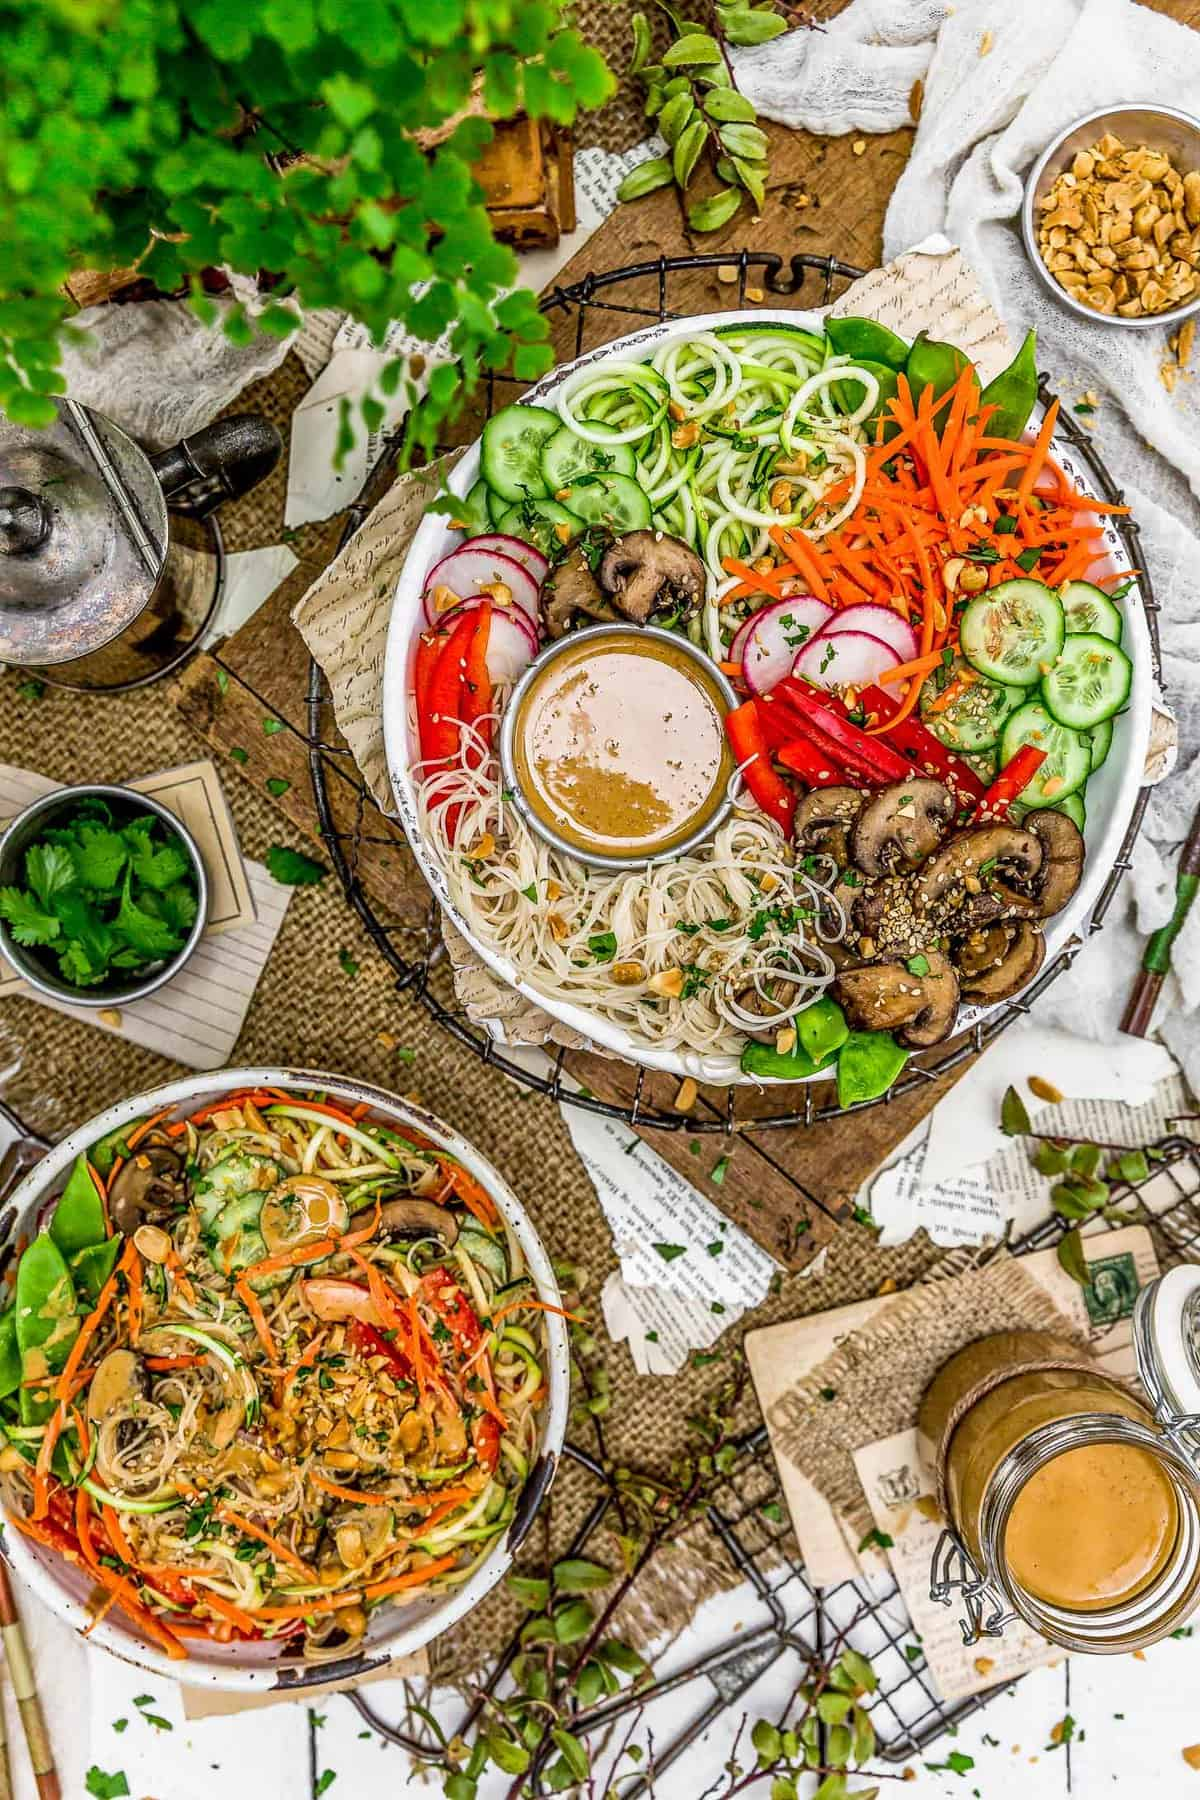 Tablescape of Spicy Peanut Dressing and veggie bowls